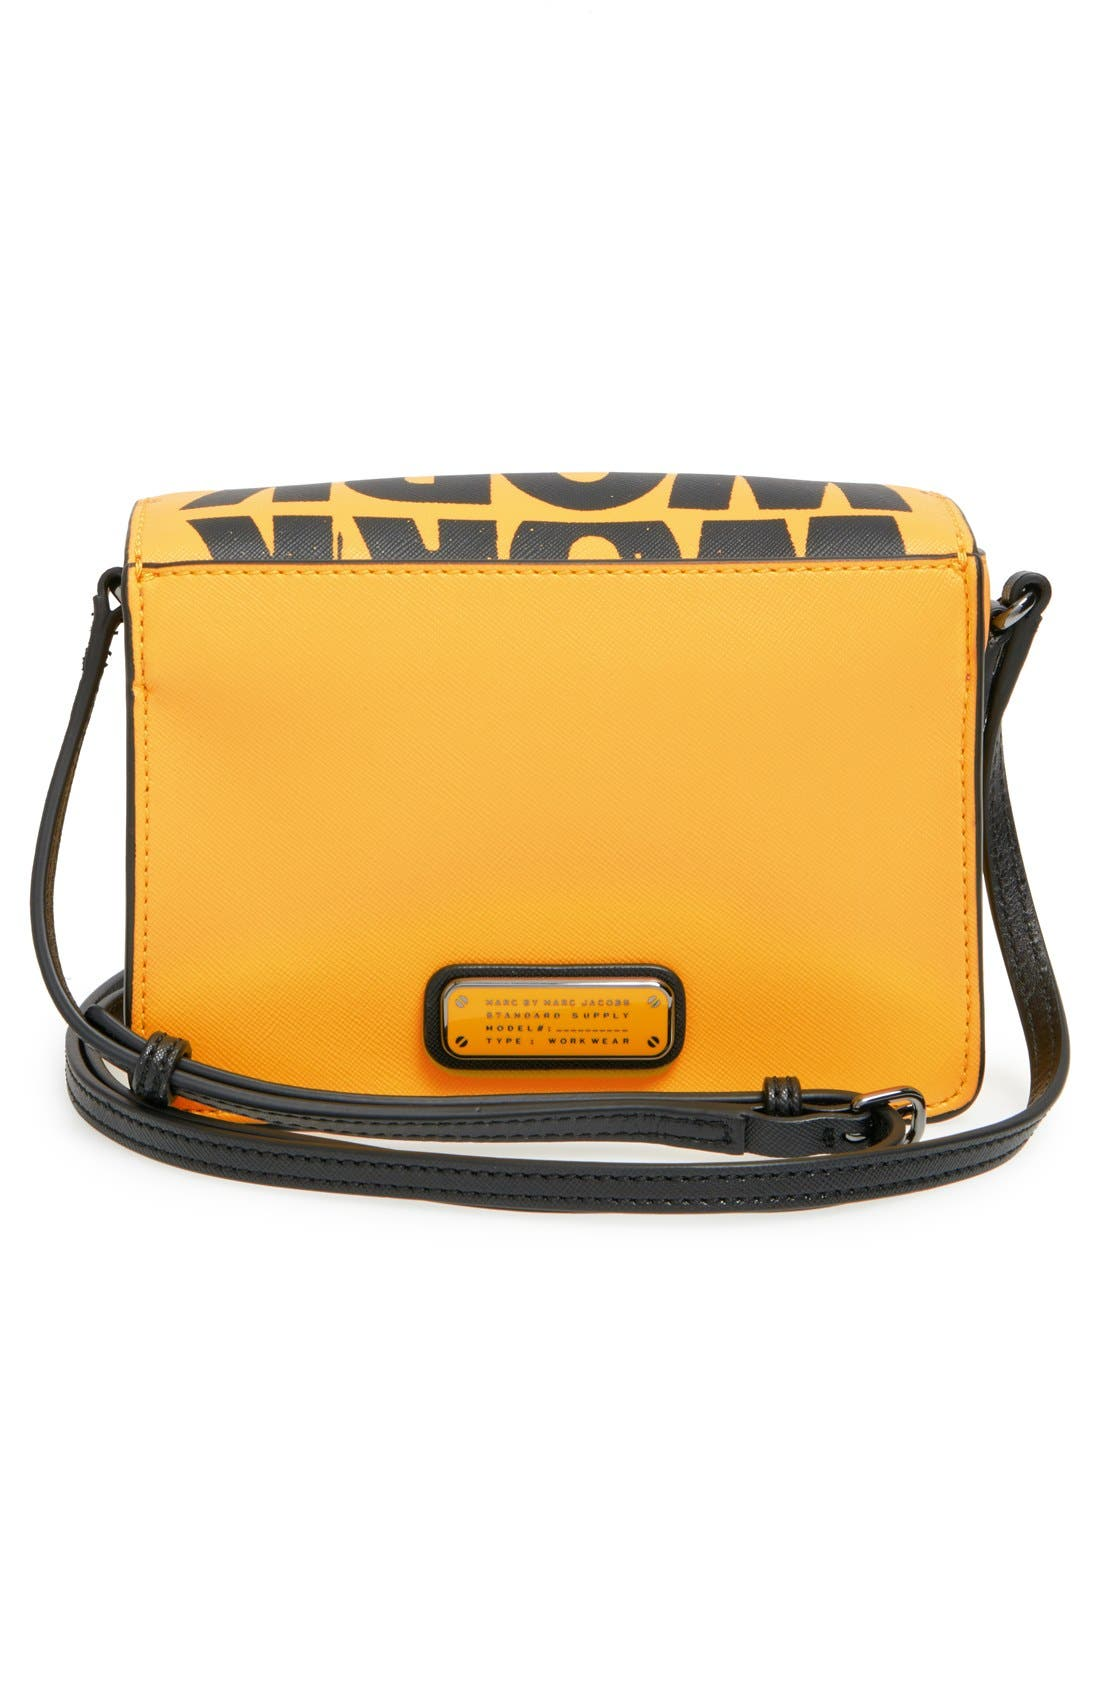 Alternate Image 3  - MARC BY MARC JACOBS 'Metropoli' Envelope Crossbody Bag